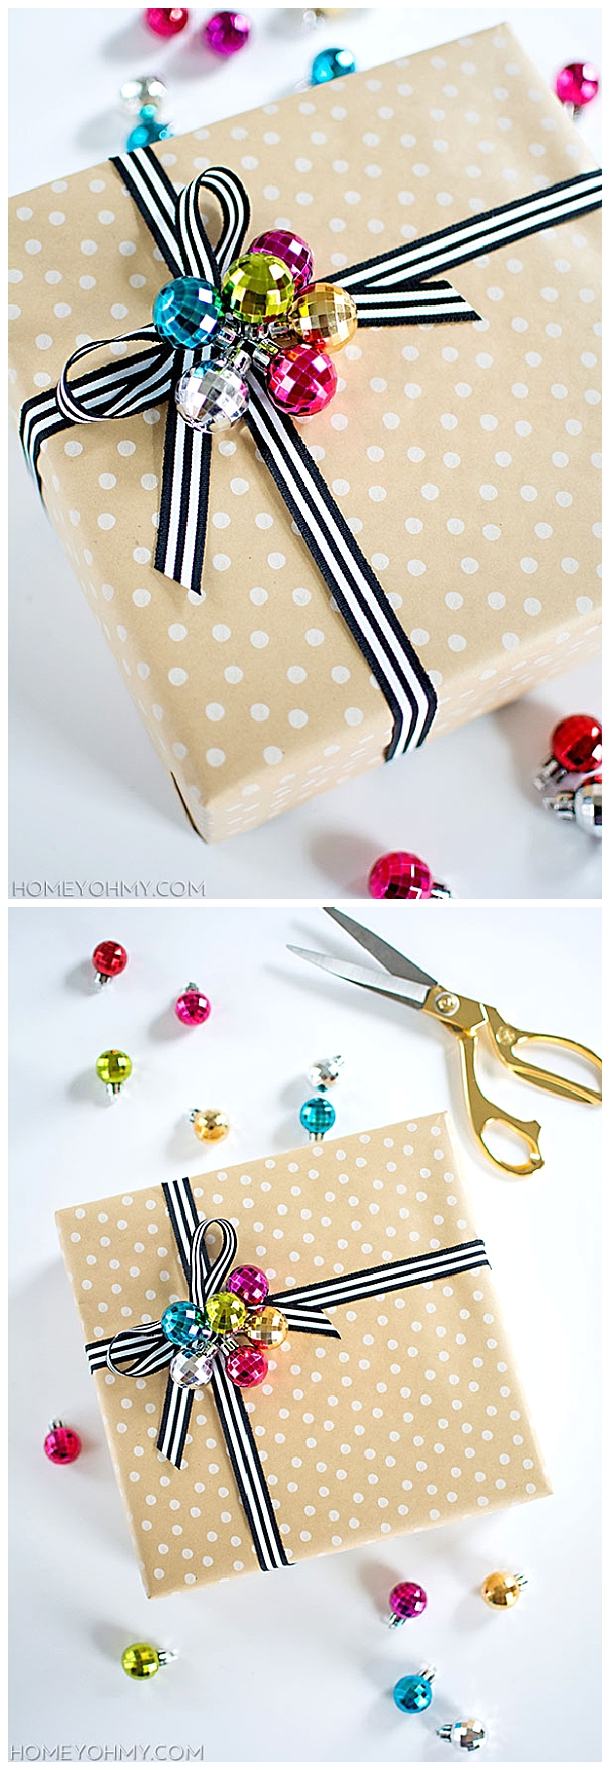 DIY Ornament Cluster Gift Toppers | Homey Oh My - The BEST DIY Gift Toppers - Pretty and EASY Inexpensive Handmade Ideas for Christmas, Birthdays, Holidays and any special occasion! #diygifttoppers #DIYGiftwrapping #diygiftwrap #gifttoppers #christmasgifttoppers #diychristmasgifttoppers #birthdaygifttoppers #diychristmasbows